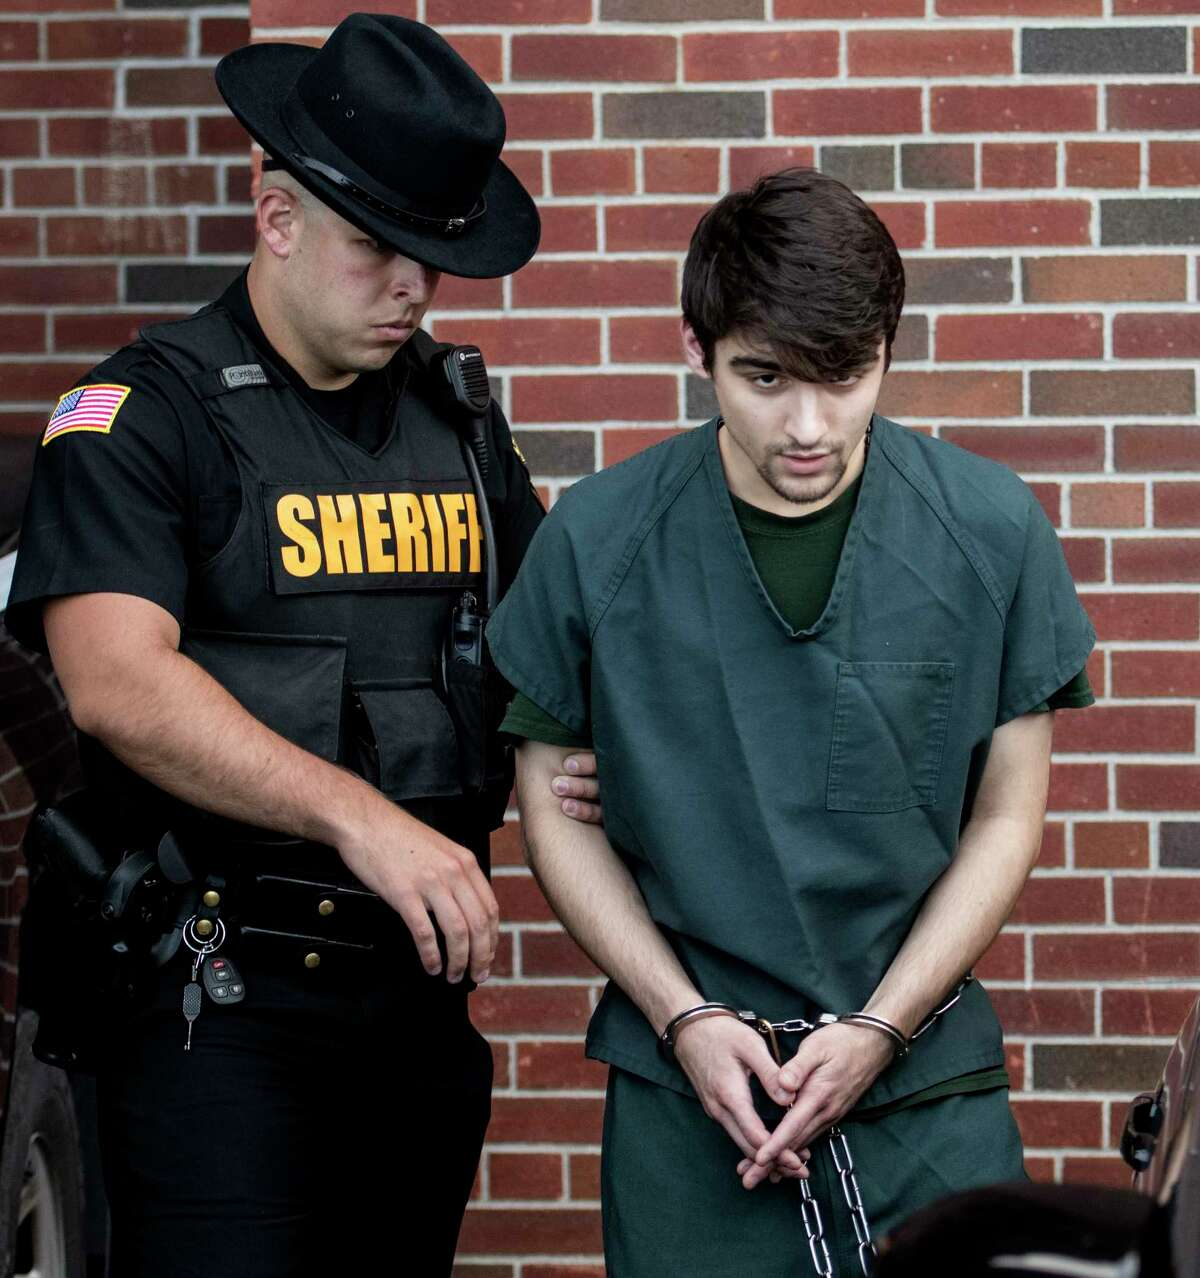 Nikolai Mavashev, 19, leaves Saratoga County Court Friday Sept. 21, 2017 in Ballston Spa, N.Y. after his arraignments on 29 charges the most serious of which is 1st degree murder related to the alleged shooting of a man inside his Mechanicville home in July. (Skip Dickstein/Times Union)